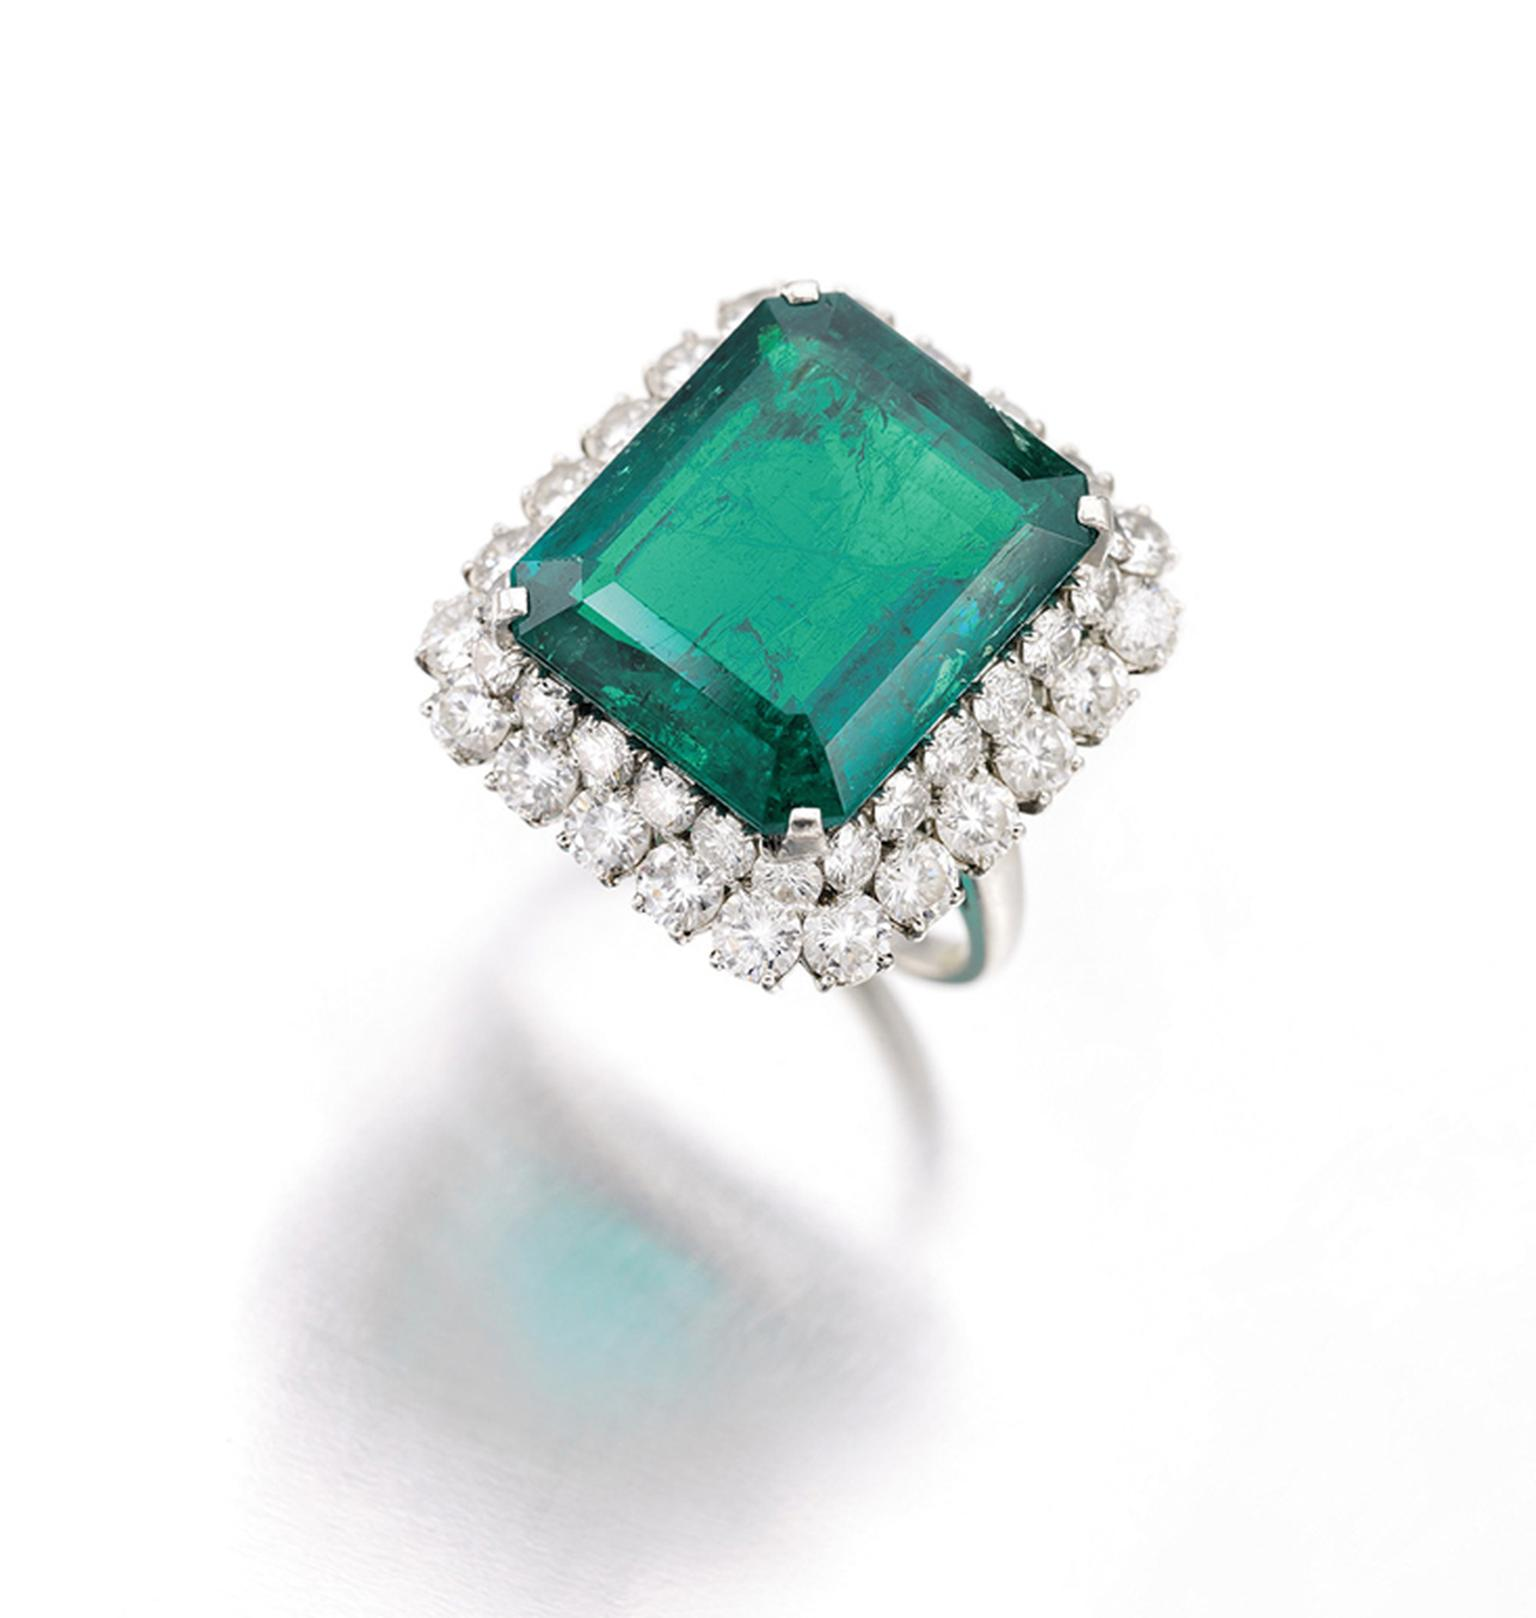 An emerald and diamond ring by Bulgari, circa 1964, set with a 16.62ct step-cut emerald, that belonged to Gina Lollobrigida. It sold for CHF 173,000 at Sotheby's Geneva in May 2013.